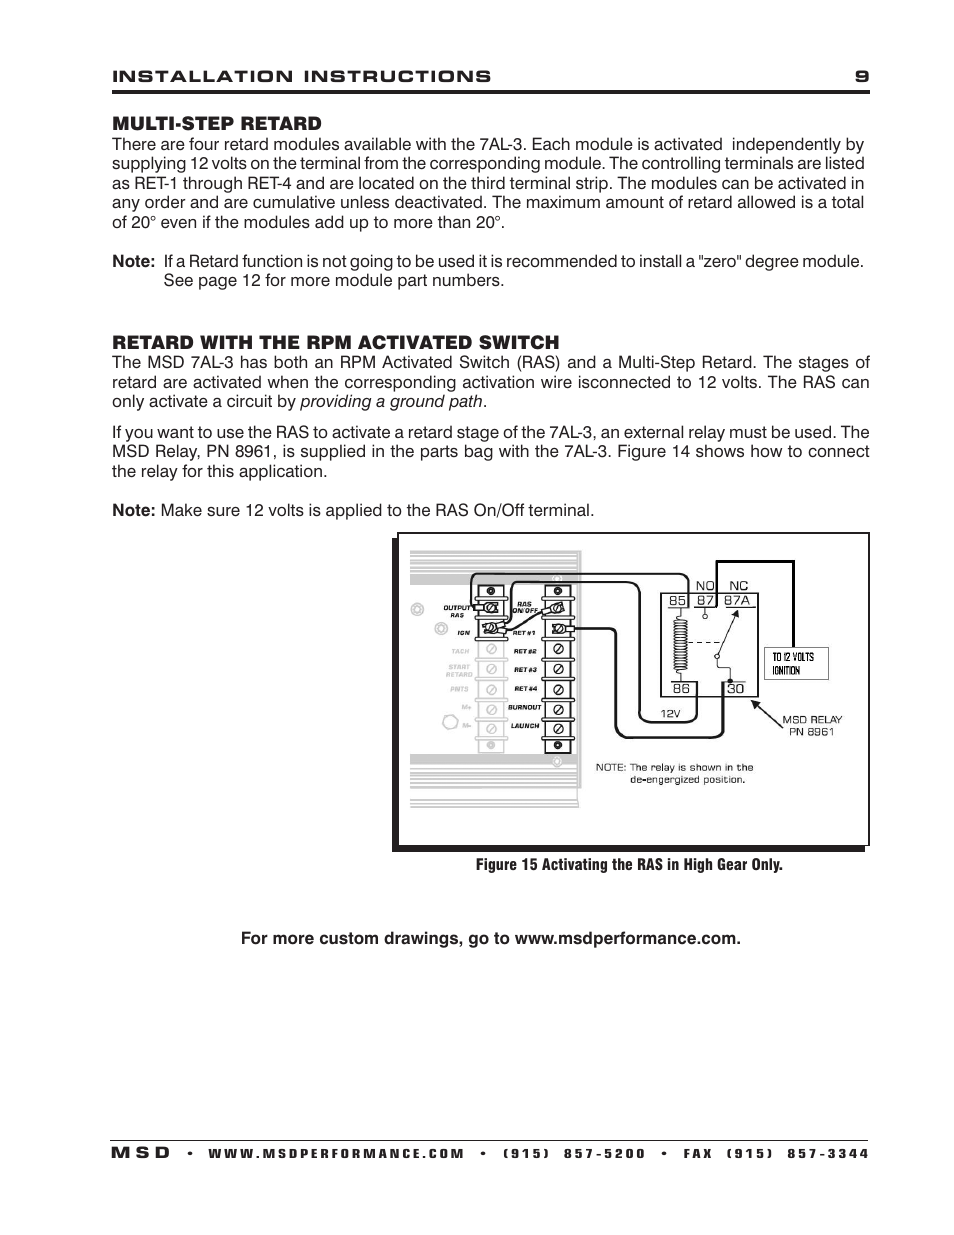 msd 7al 3 wiring diagram wiring diagram bookmark  msd 7al wiring diagram #9